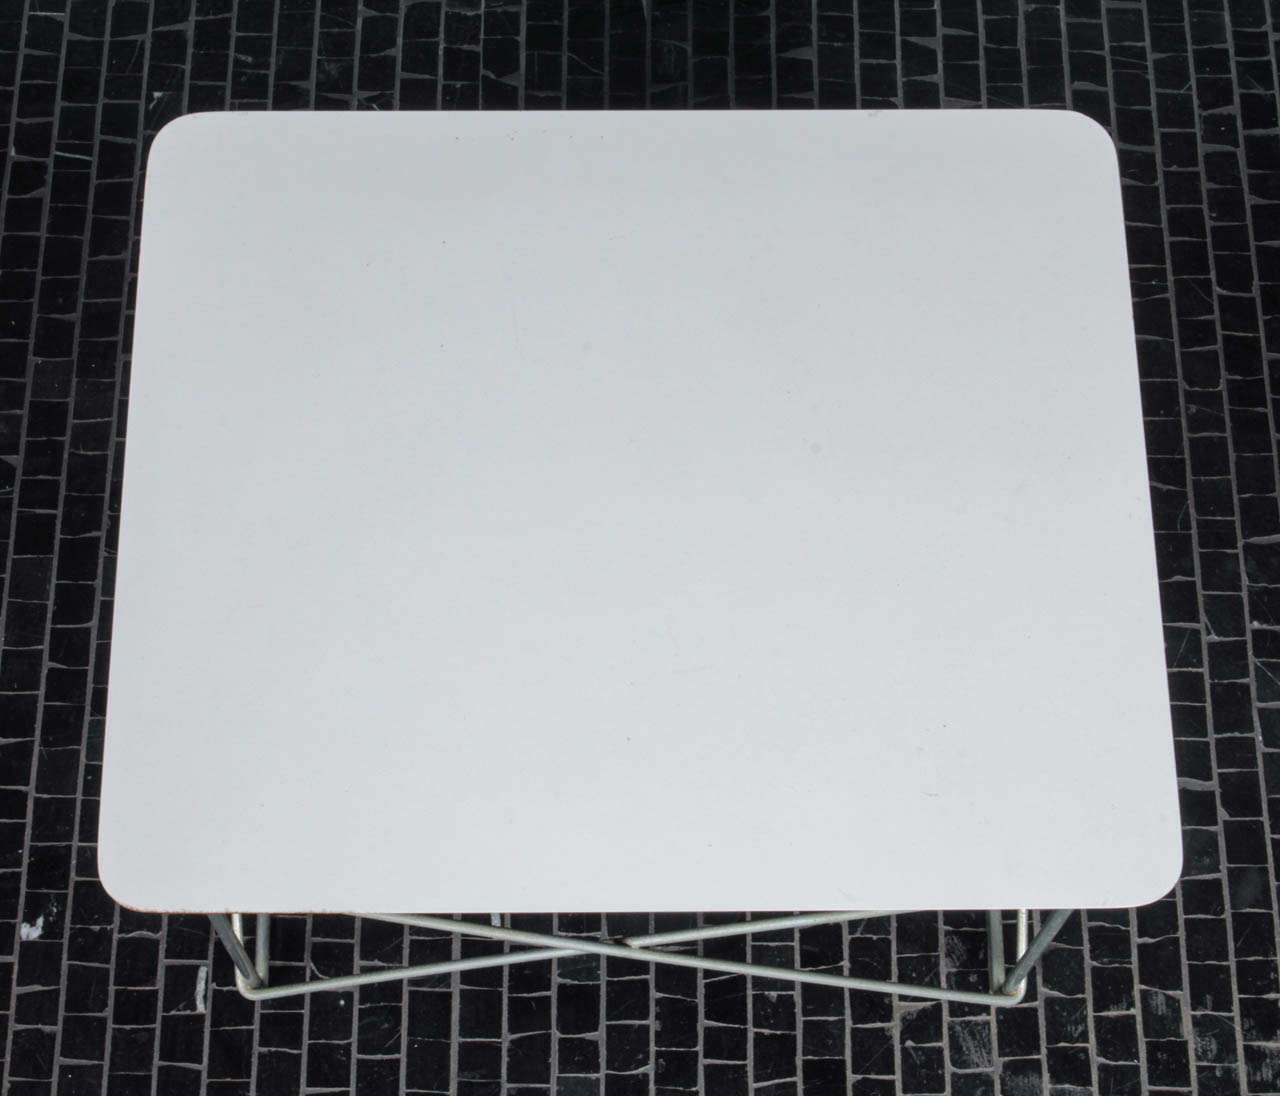 Charles eames ltr in white laminate and zinc at 1stdibs for Zinc laminate